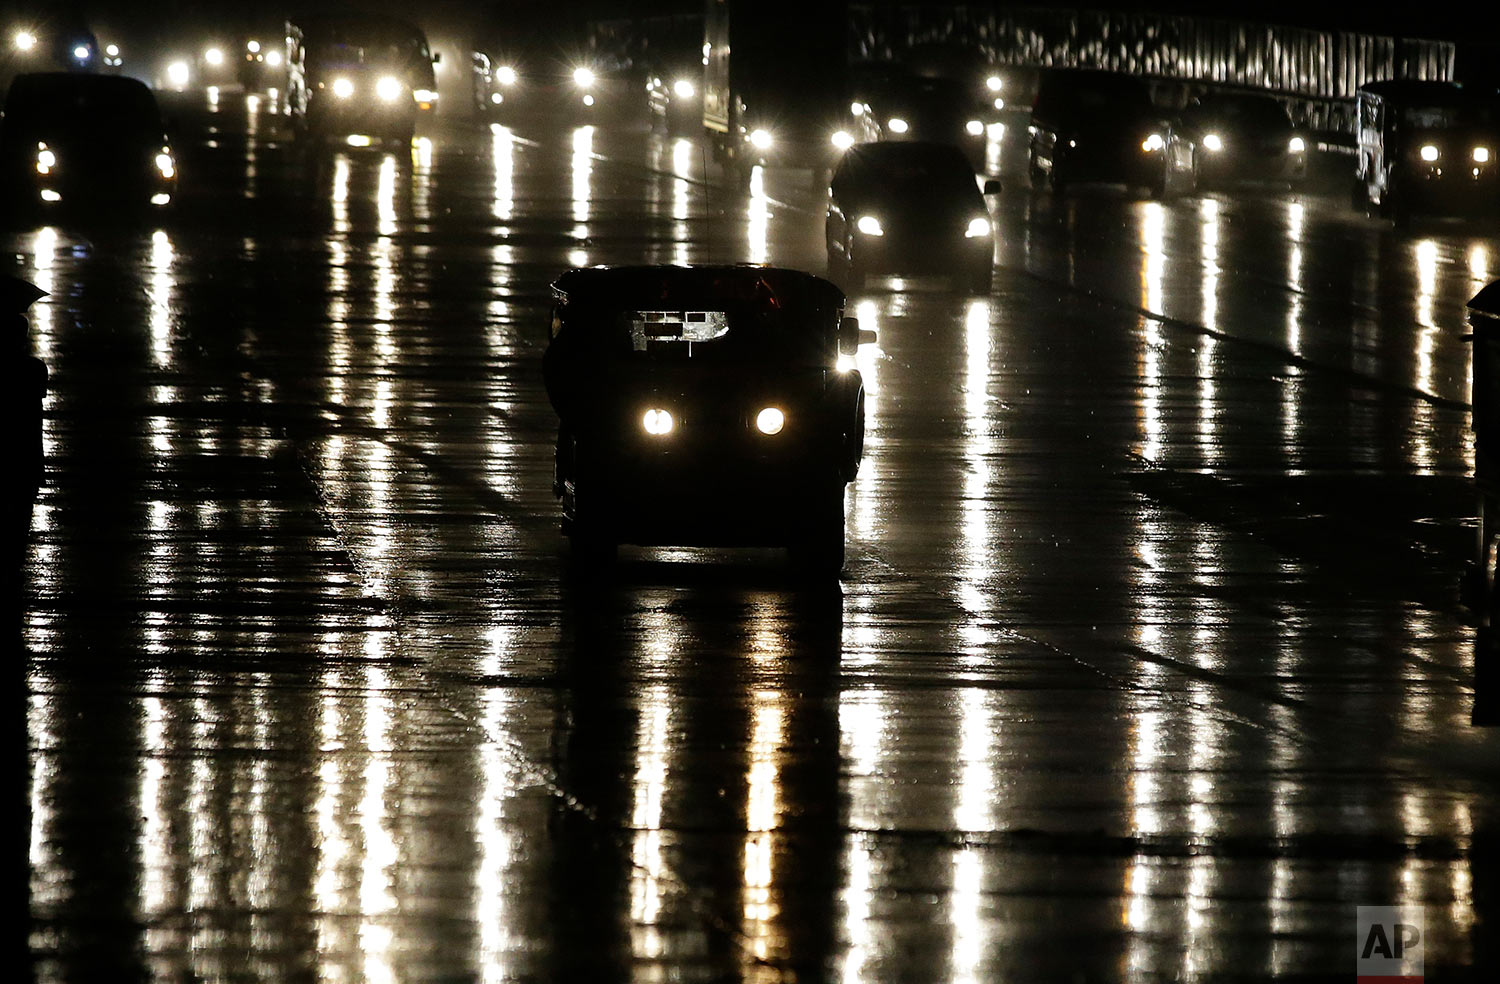 """A passenger jeepney travels along a wet road during rains in metropolitan Manila, Philippines on Tuesday, Sept. 26, 2017. Passenger jeepneys, often dubbed as the """"King of the Road"""" in the Philippines now faces new challenges as the government will soon implement the Public Utility Vehicle modernization program which aims to rid them of their aging diesel engines and also add more safety modifications, including public wifi and on-board CCTV. The program will affect some 600,000 Filipino drivers in the country. (AP Photo/Aaron Favila)"""